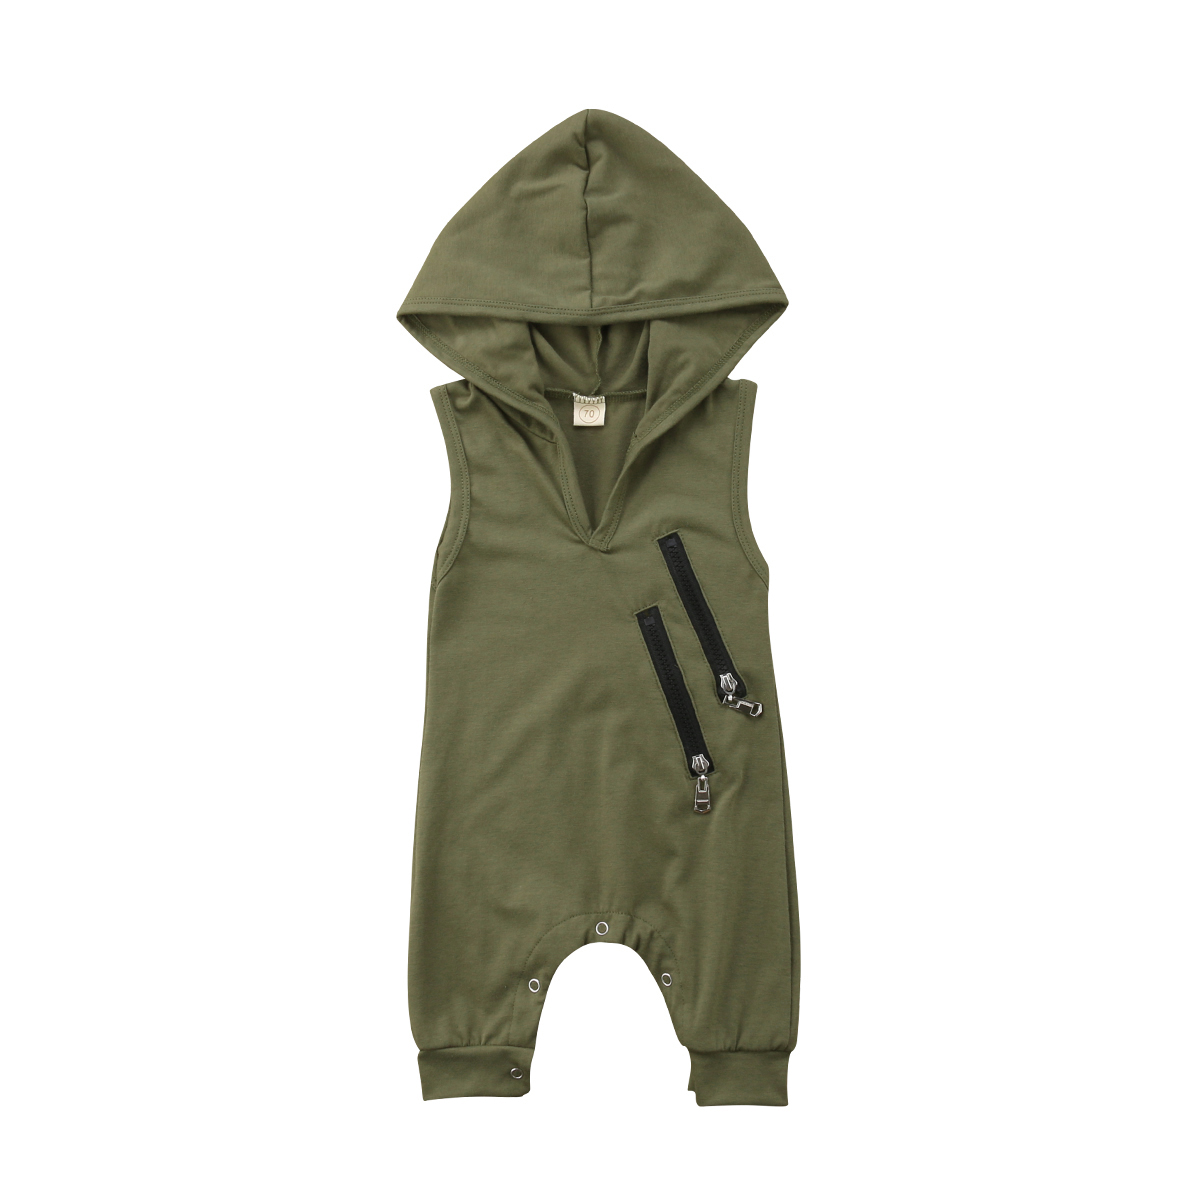 Newborn Toddler Baby Boys Girls Hooded Sleeveless Zipper   Romper   Jumpsuit Playsuit Baby Clothes 0-24M Summer